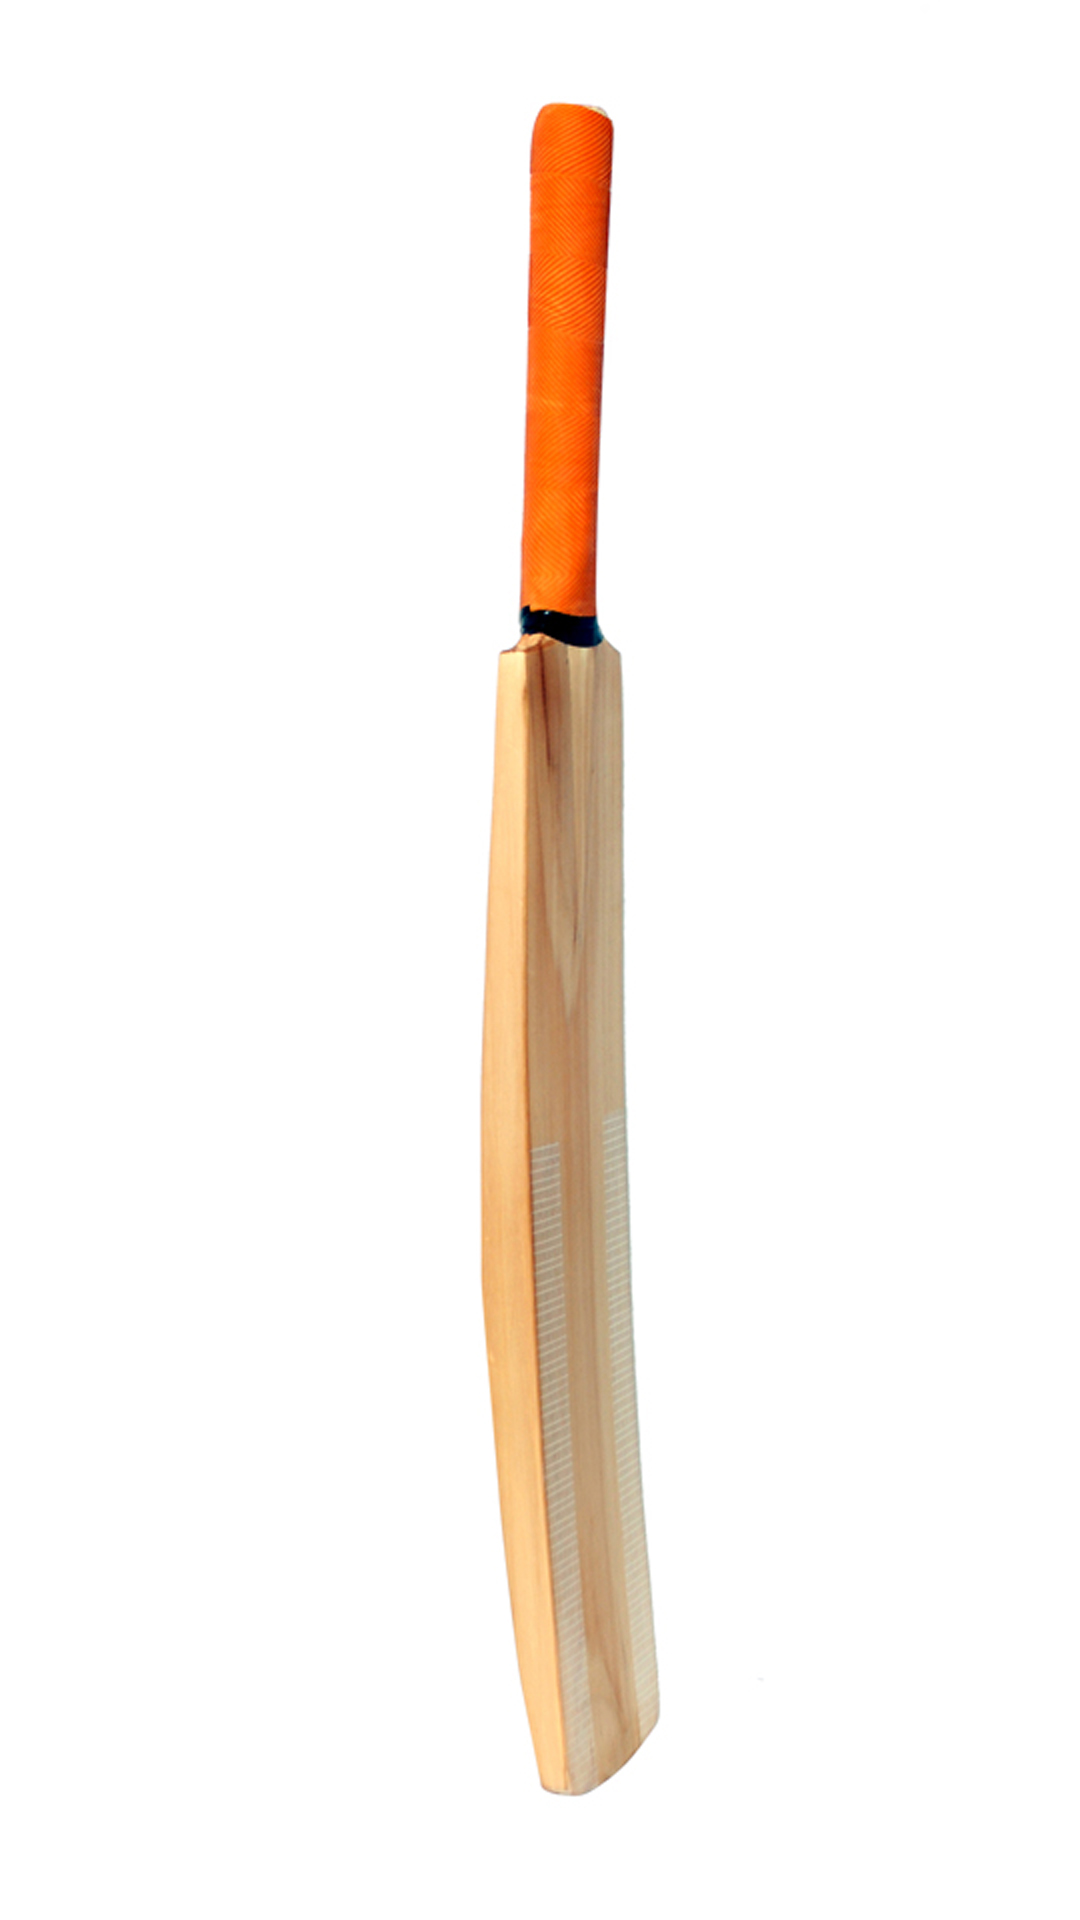 CSM Plain Dragon Himachal Willow Tennis Ball Cricket Bat with Short Handle